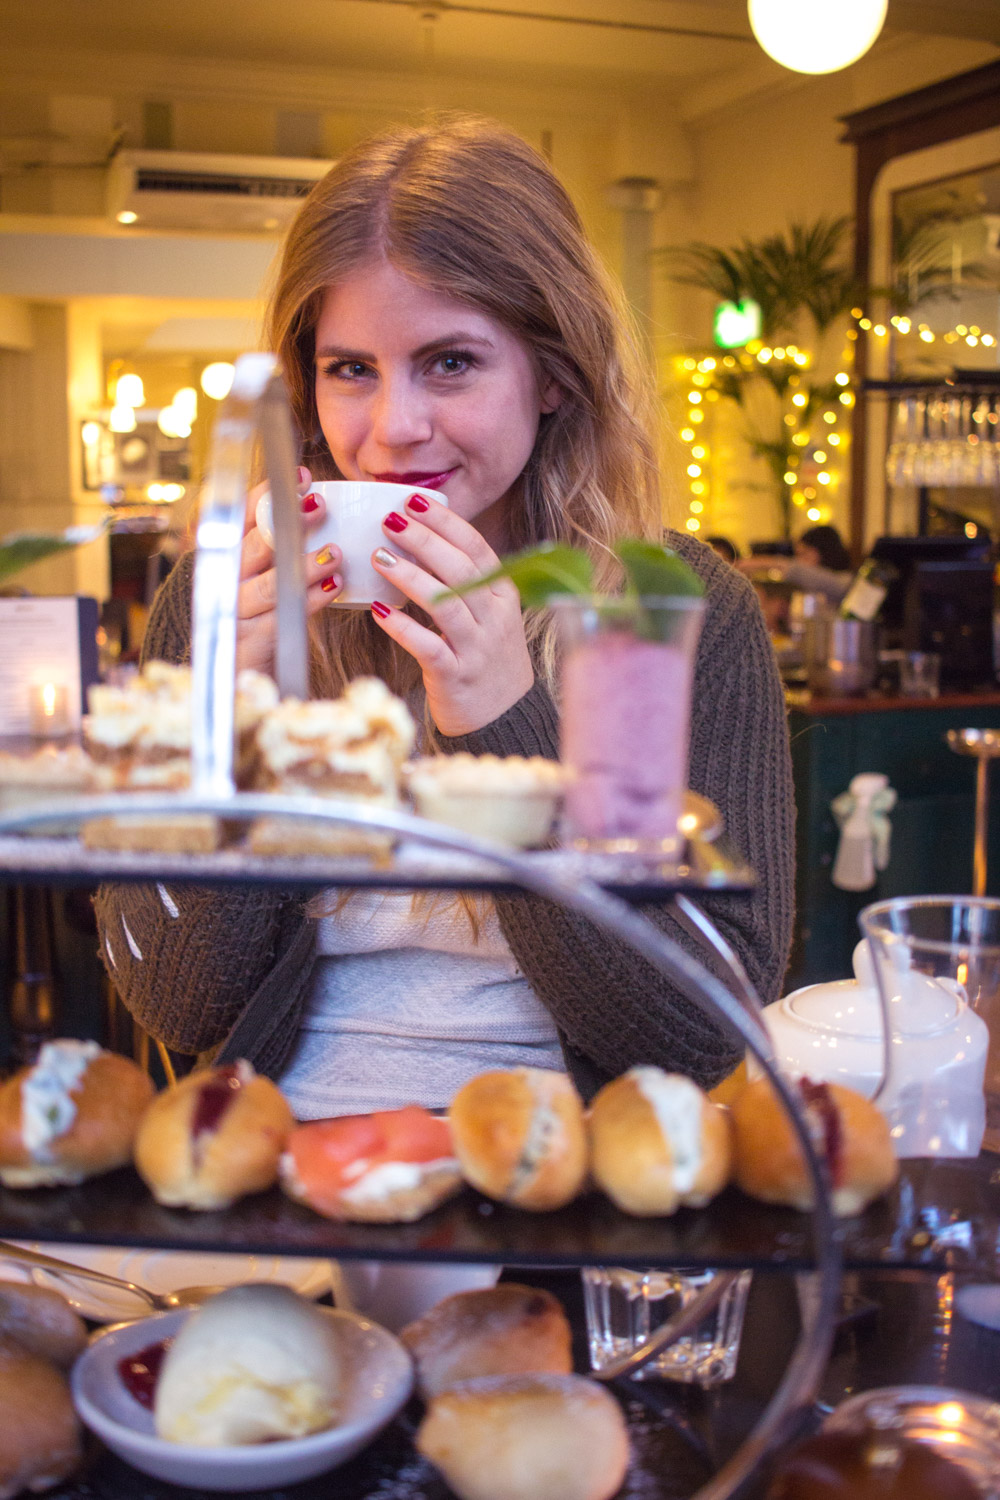 Afternoon tea in London England